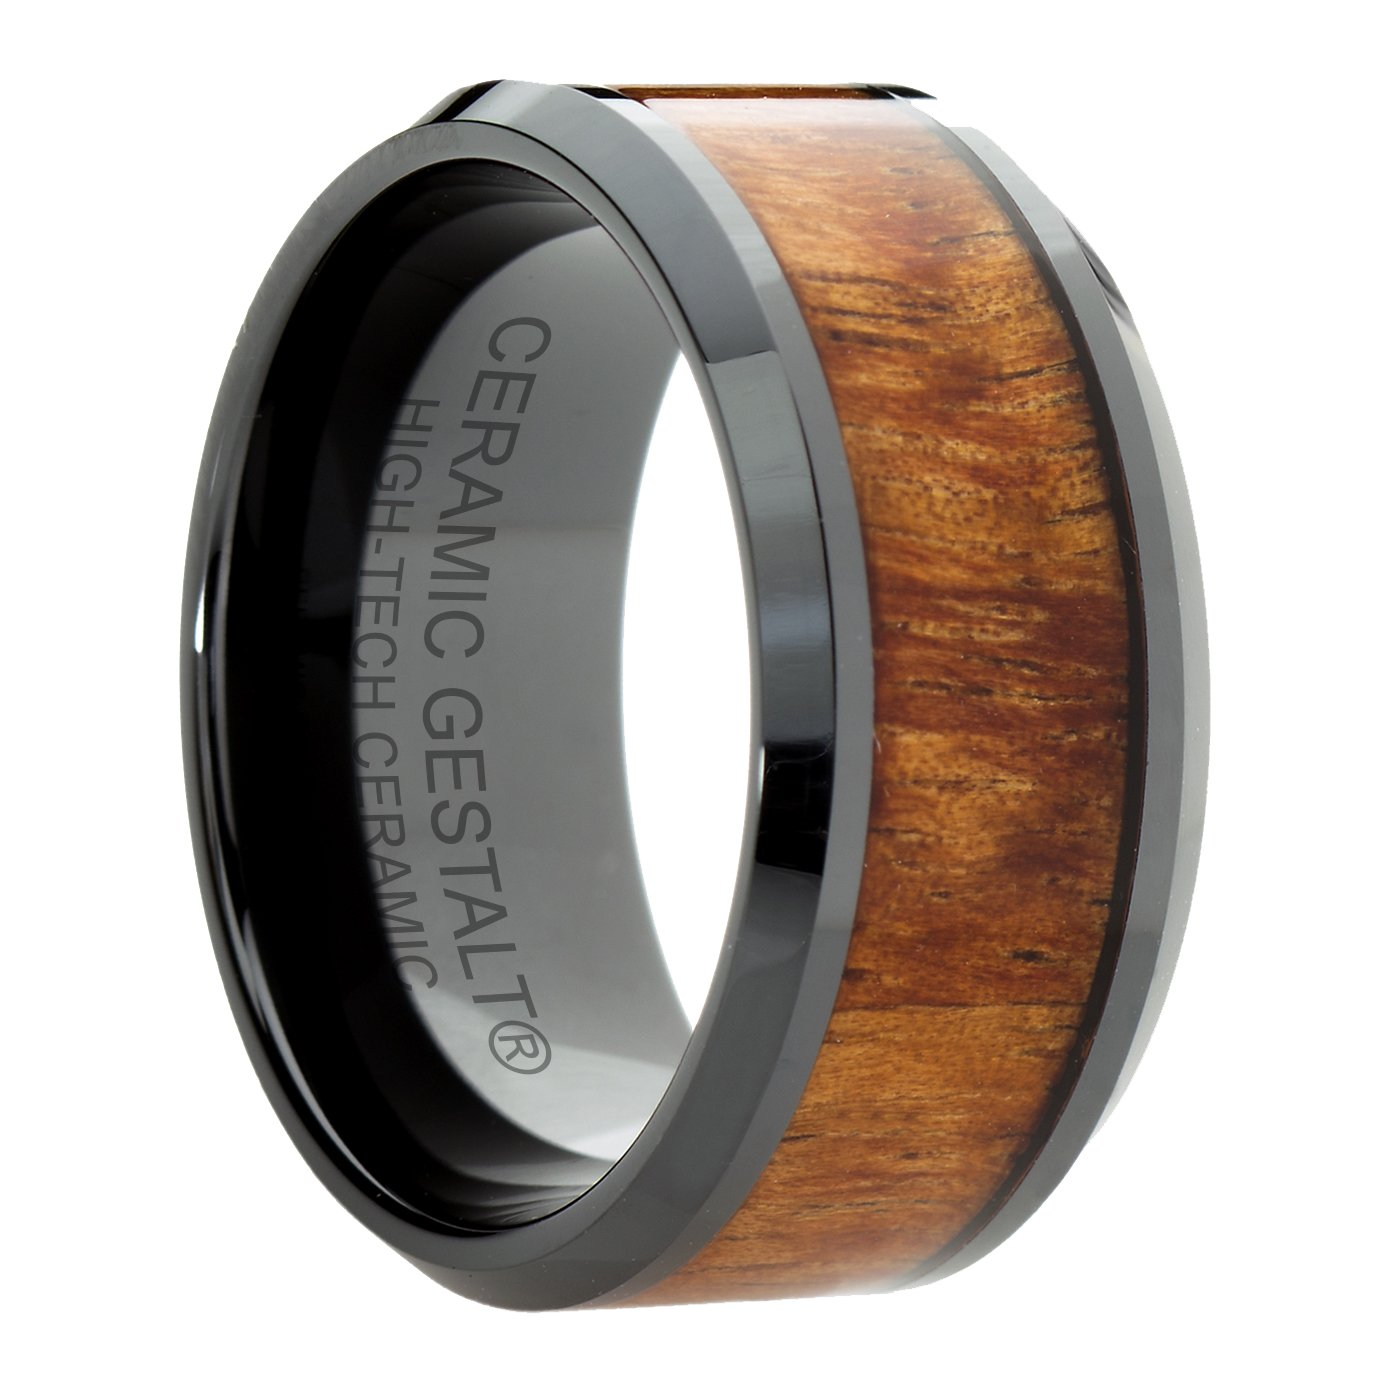 Black Ceramic Ring With KOA Wood Inlay by CERAMIC GESTALT - 10mm. Comfort Fit. RBL10KOAS11